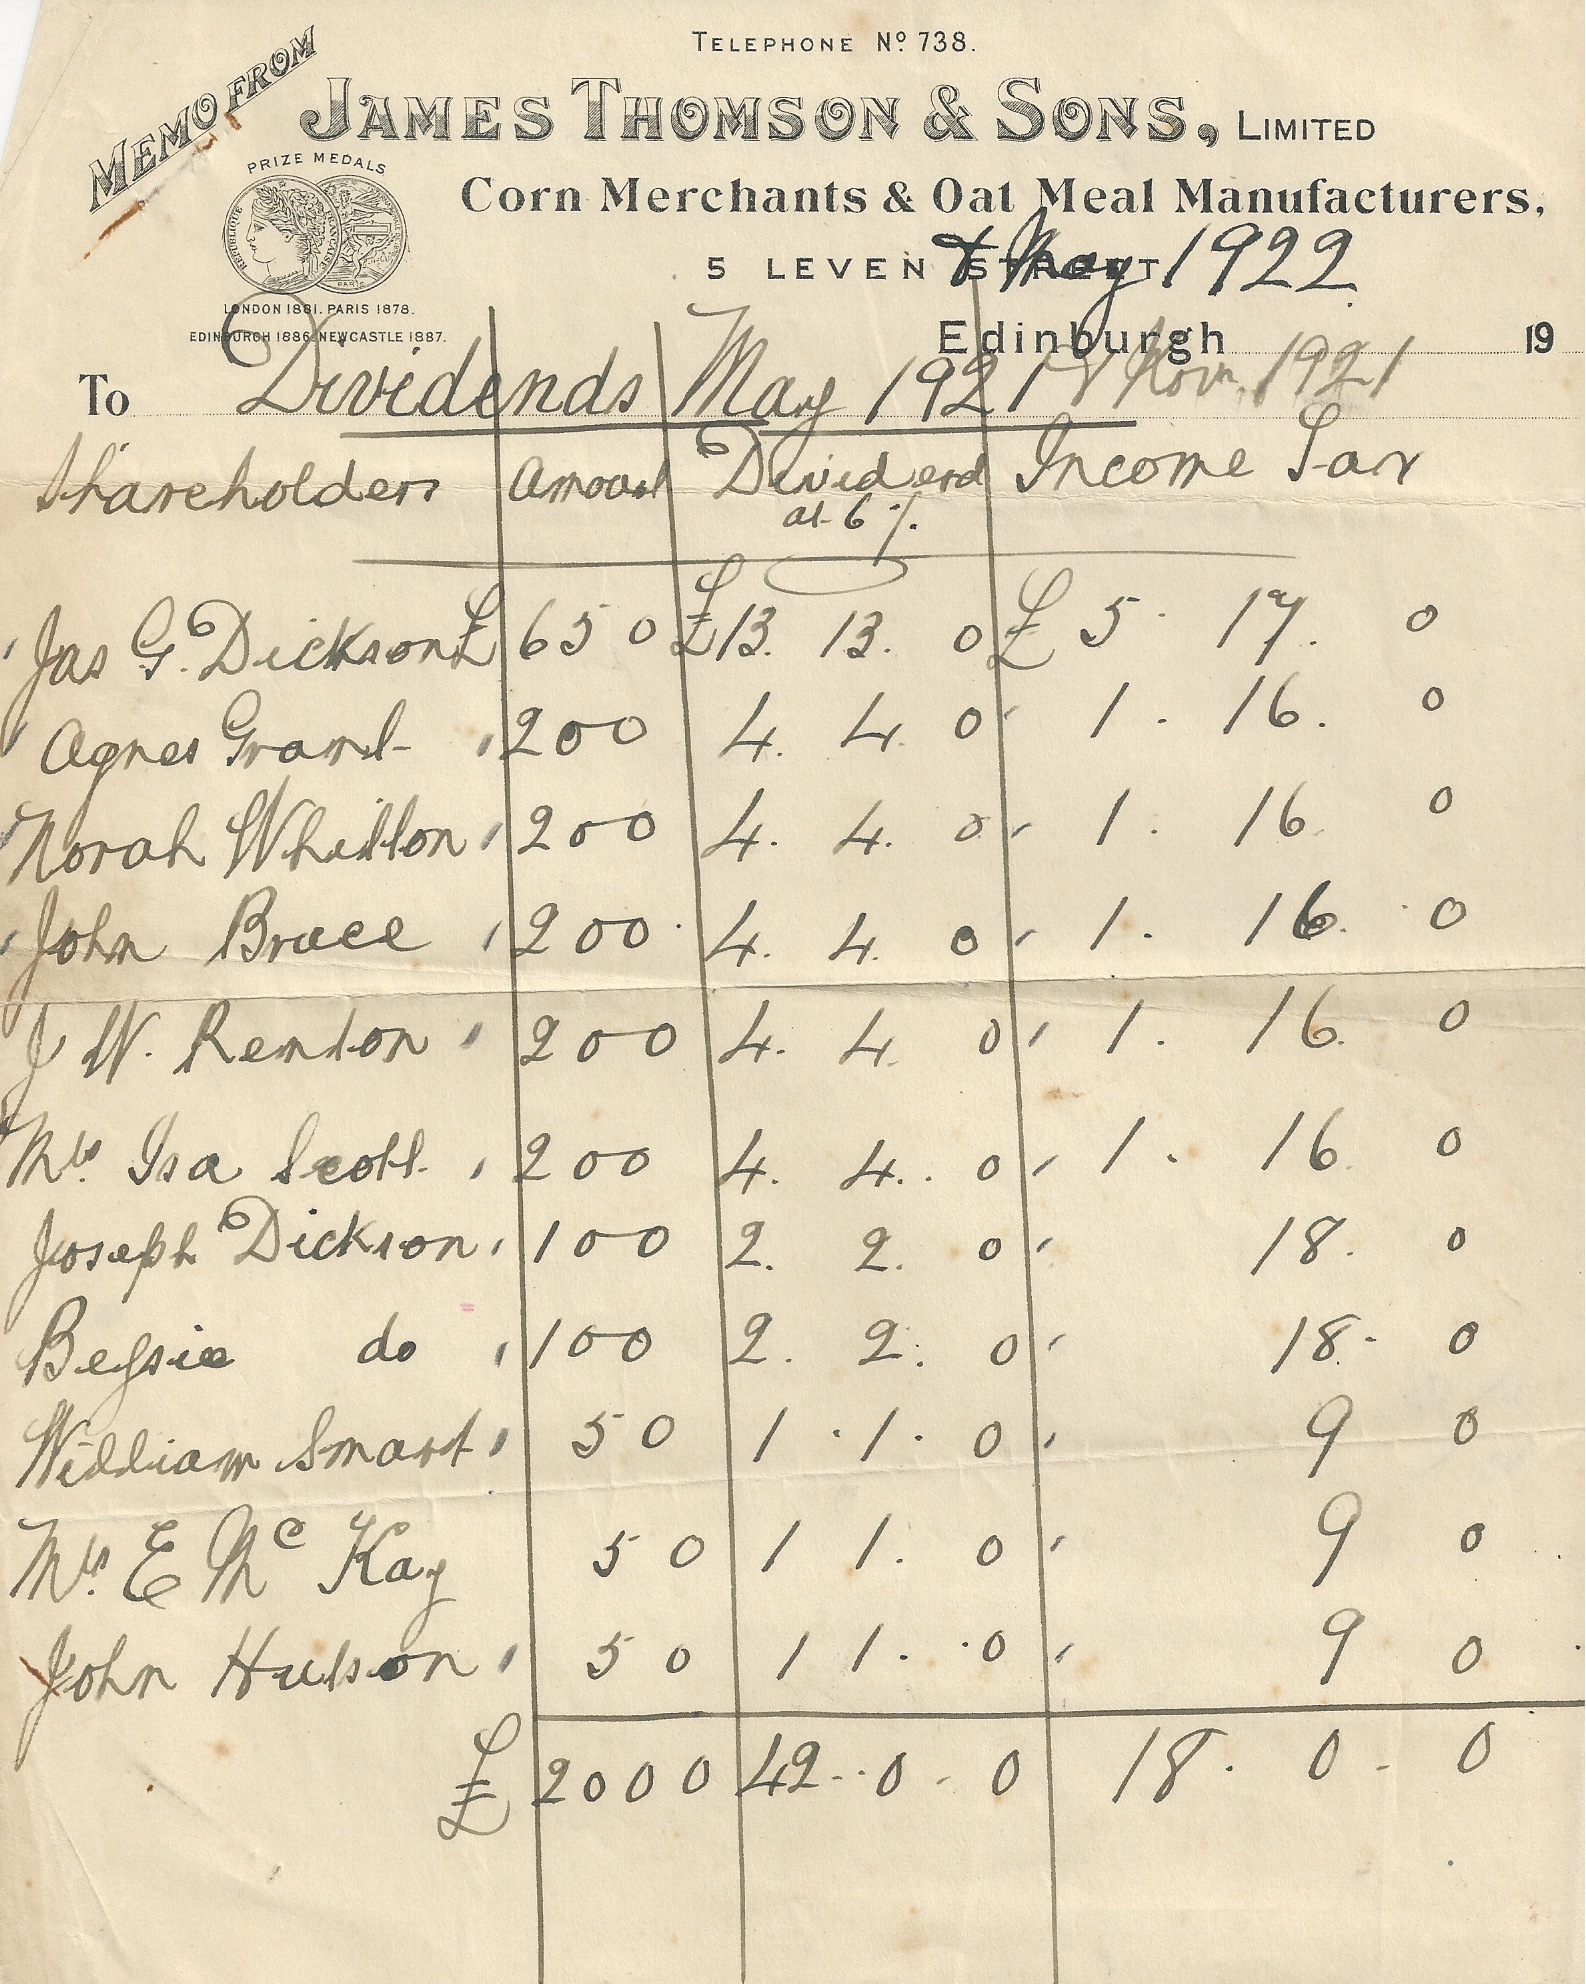 Dividend Payments to James Thomson & Sons Ltd Shareholders in 1921/22